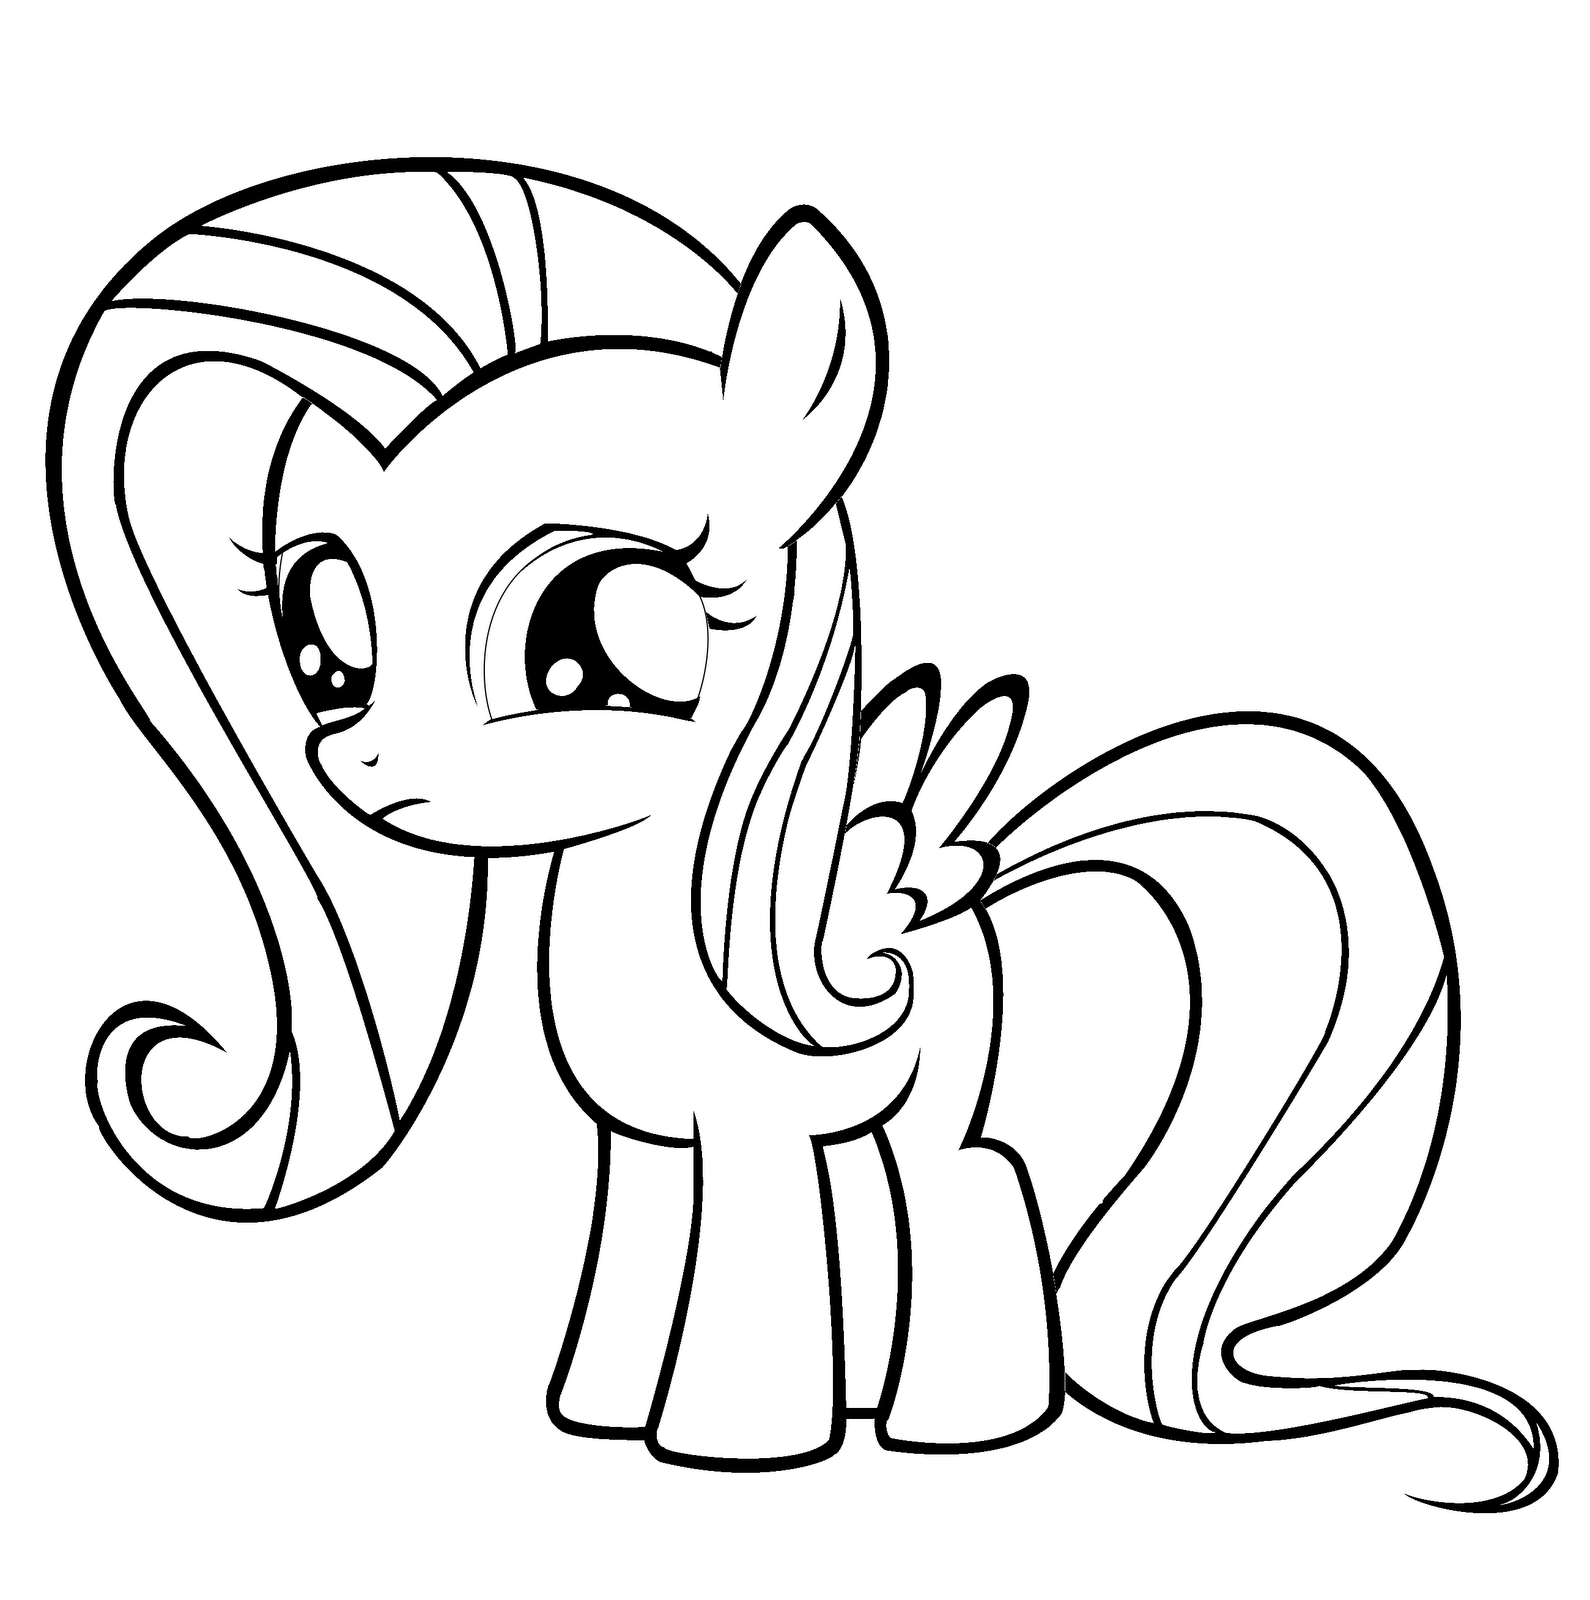 It's just a picture of Epic Baby My Little Pony Coloring Pages